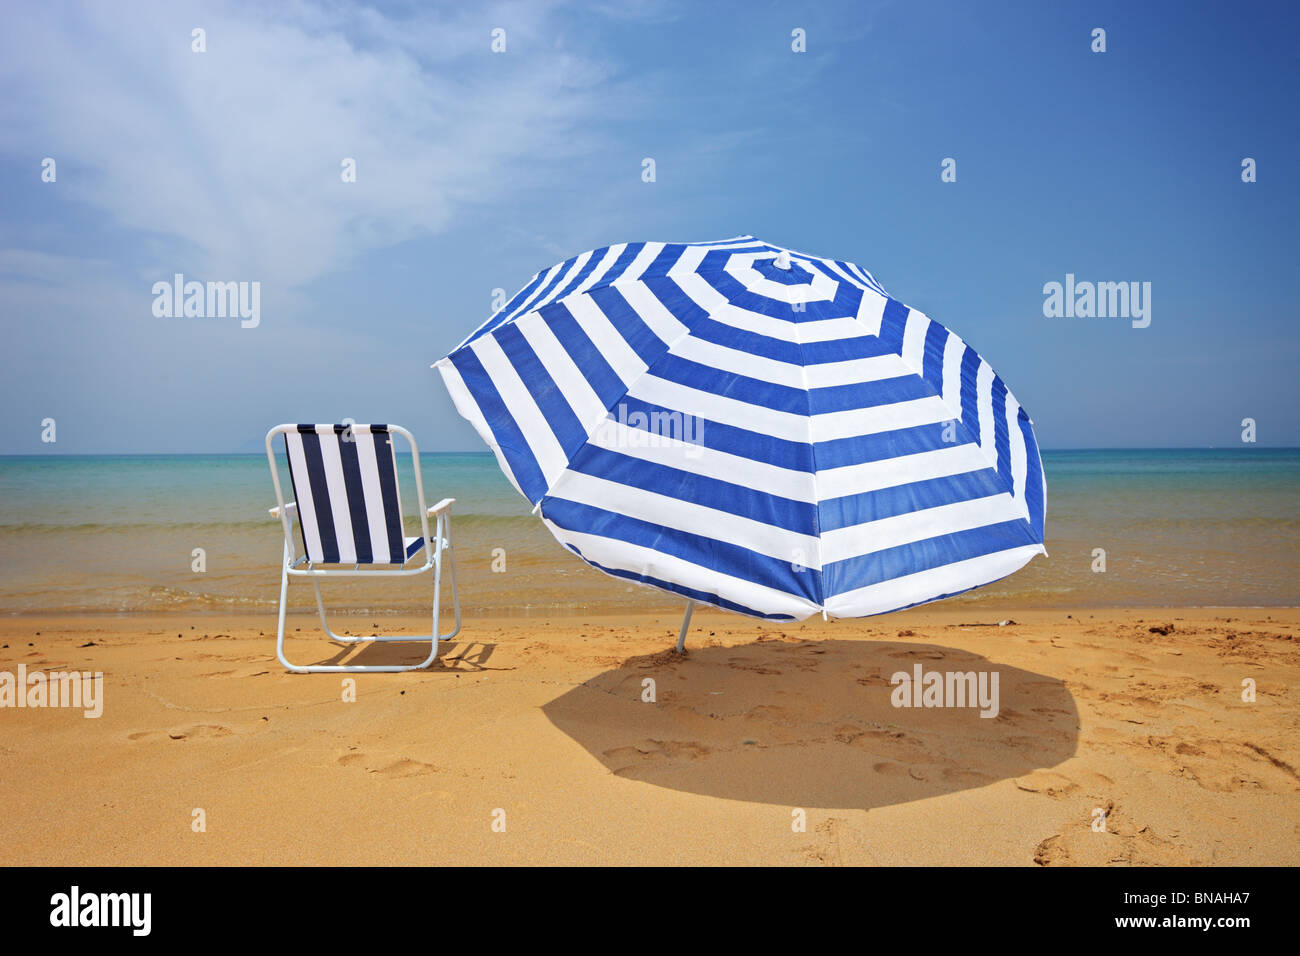 An umbrella and a chair on a sandy beach - Stock Image